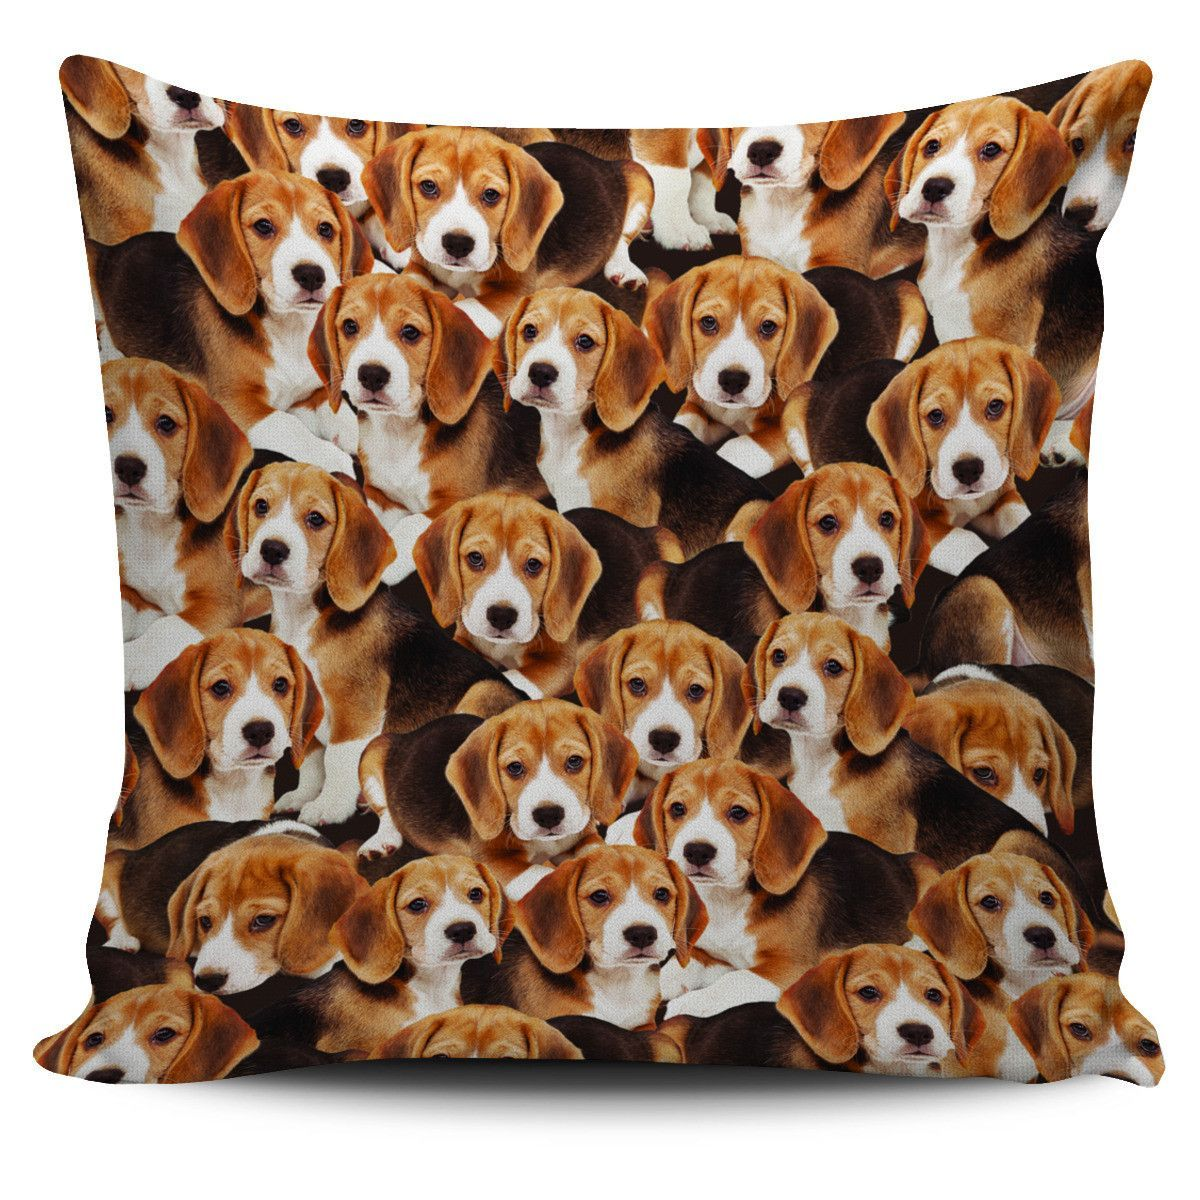 Beagle Puppy Collage Pillow Case Beagle Puppies